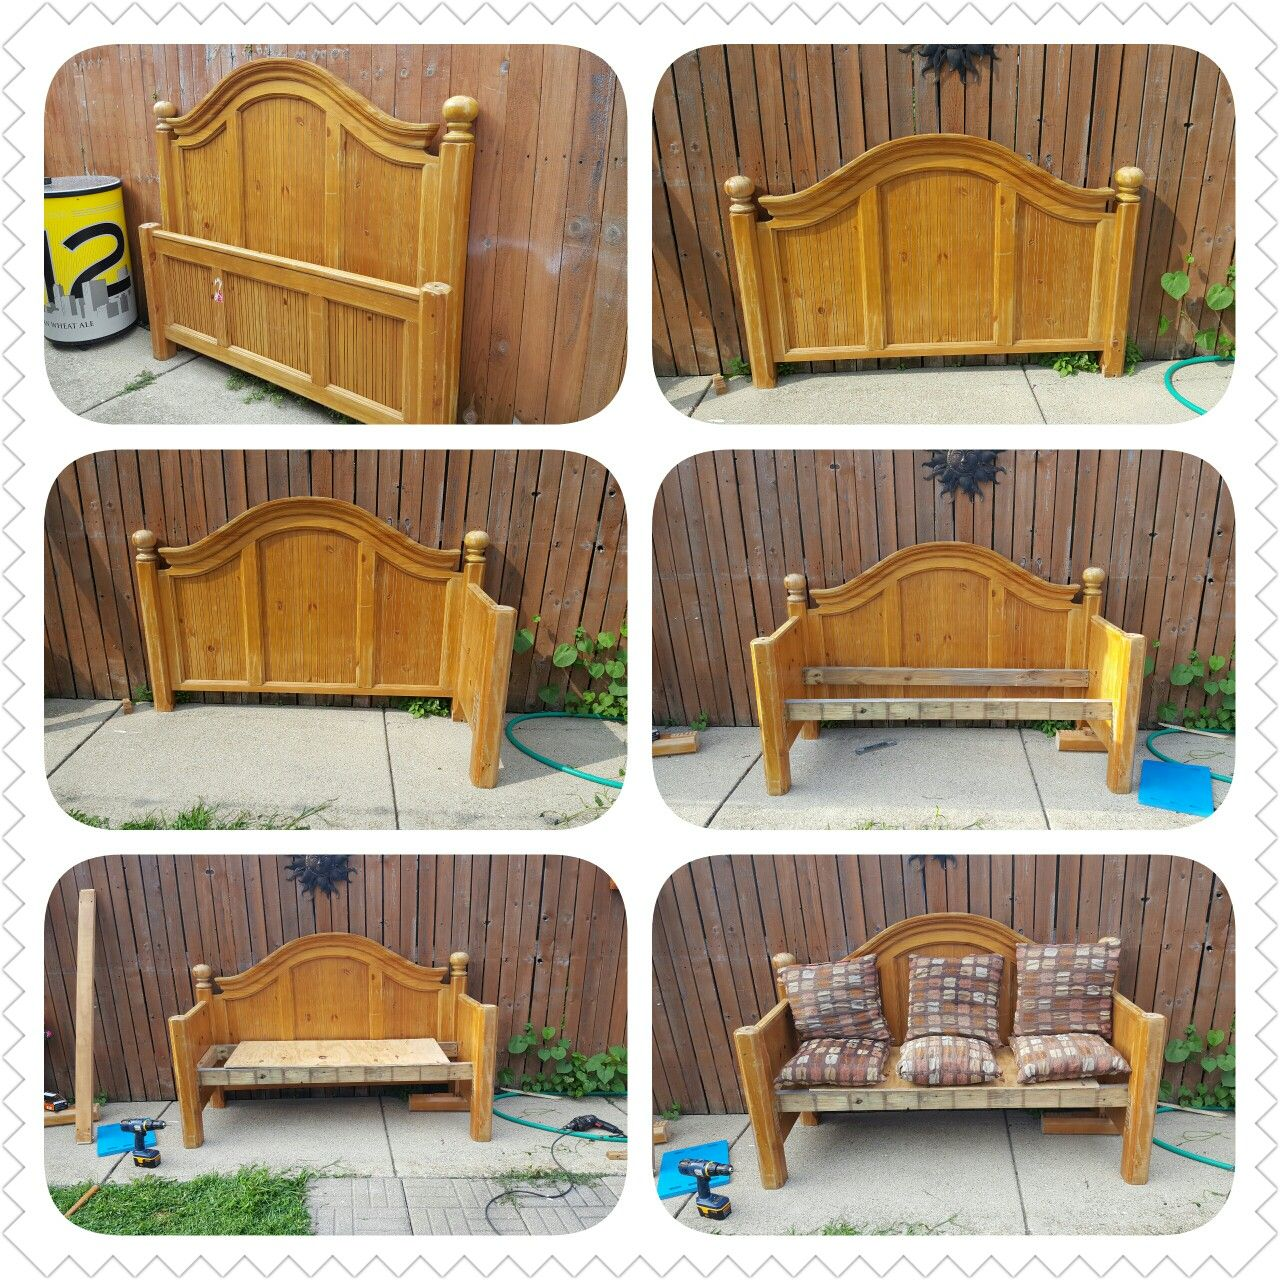 Queen head board bench Headboard benches, Diy projects